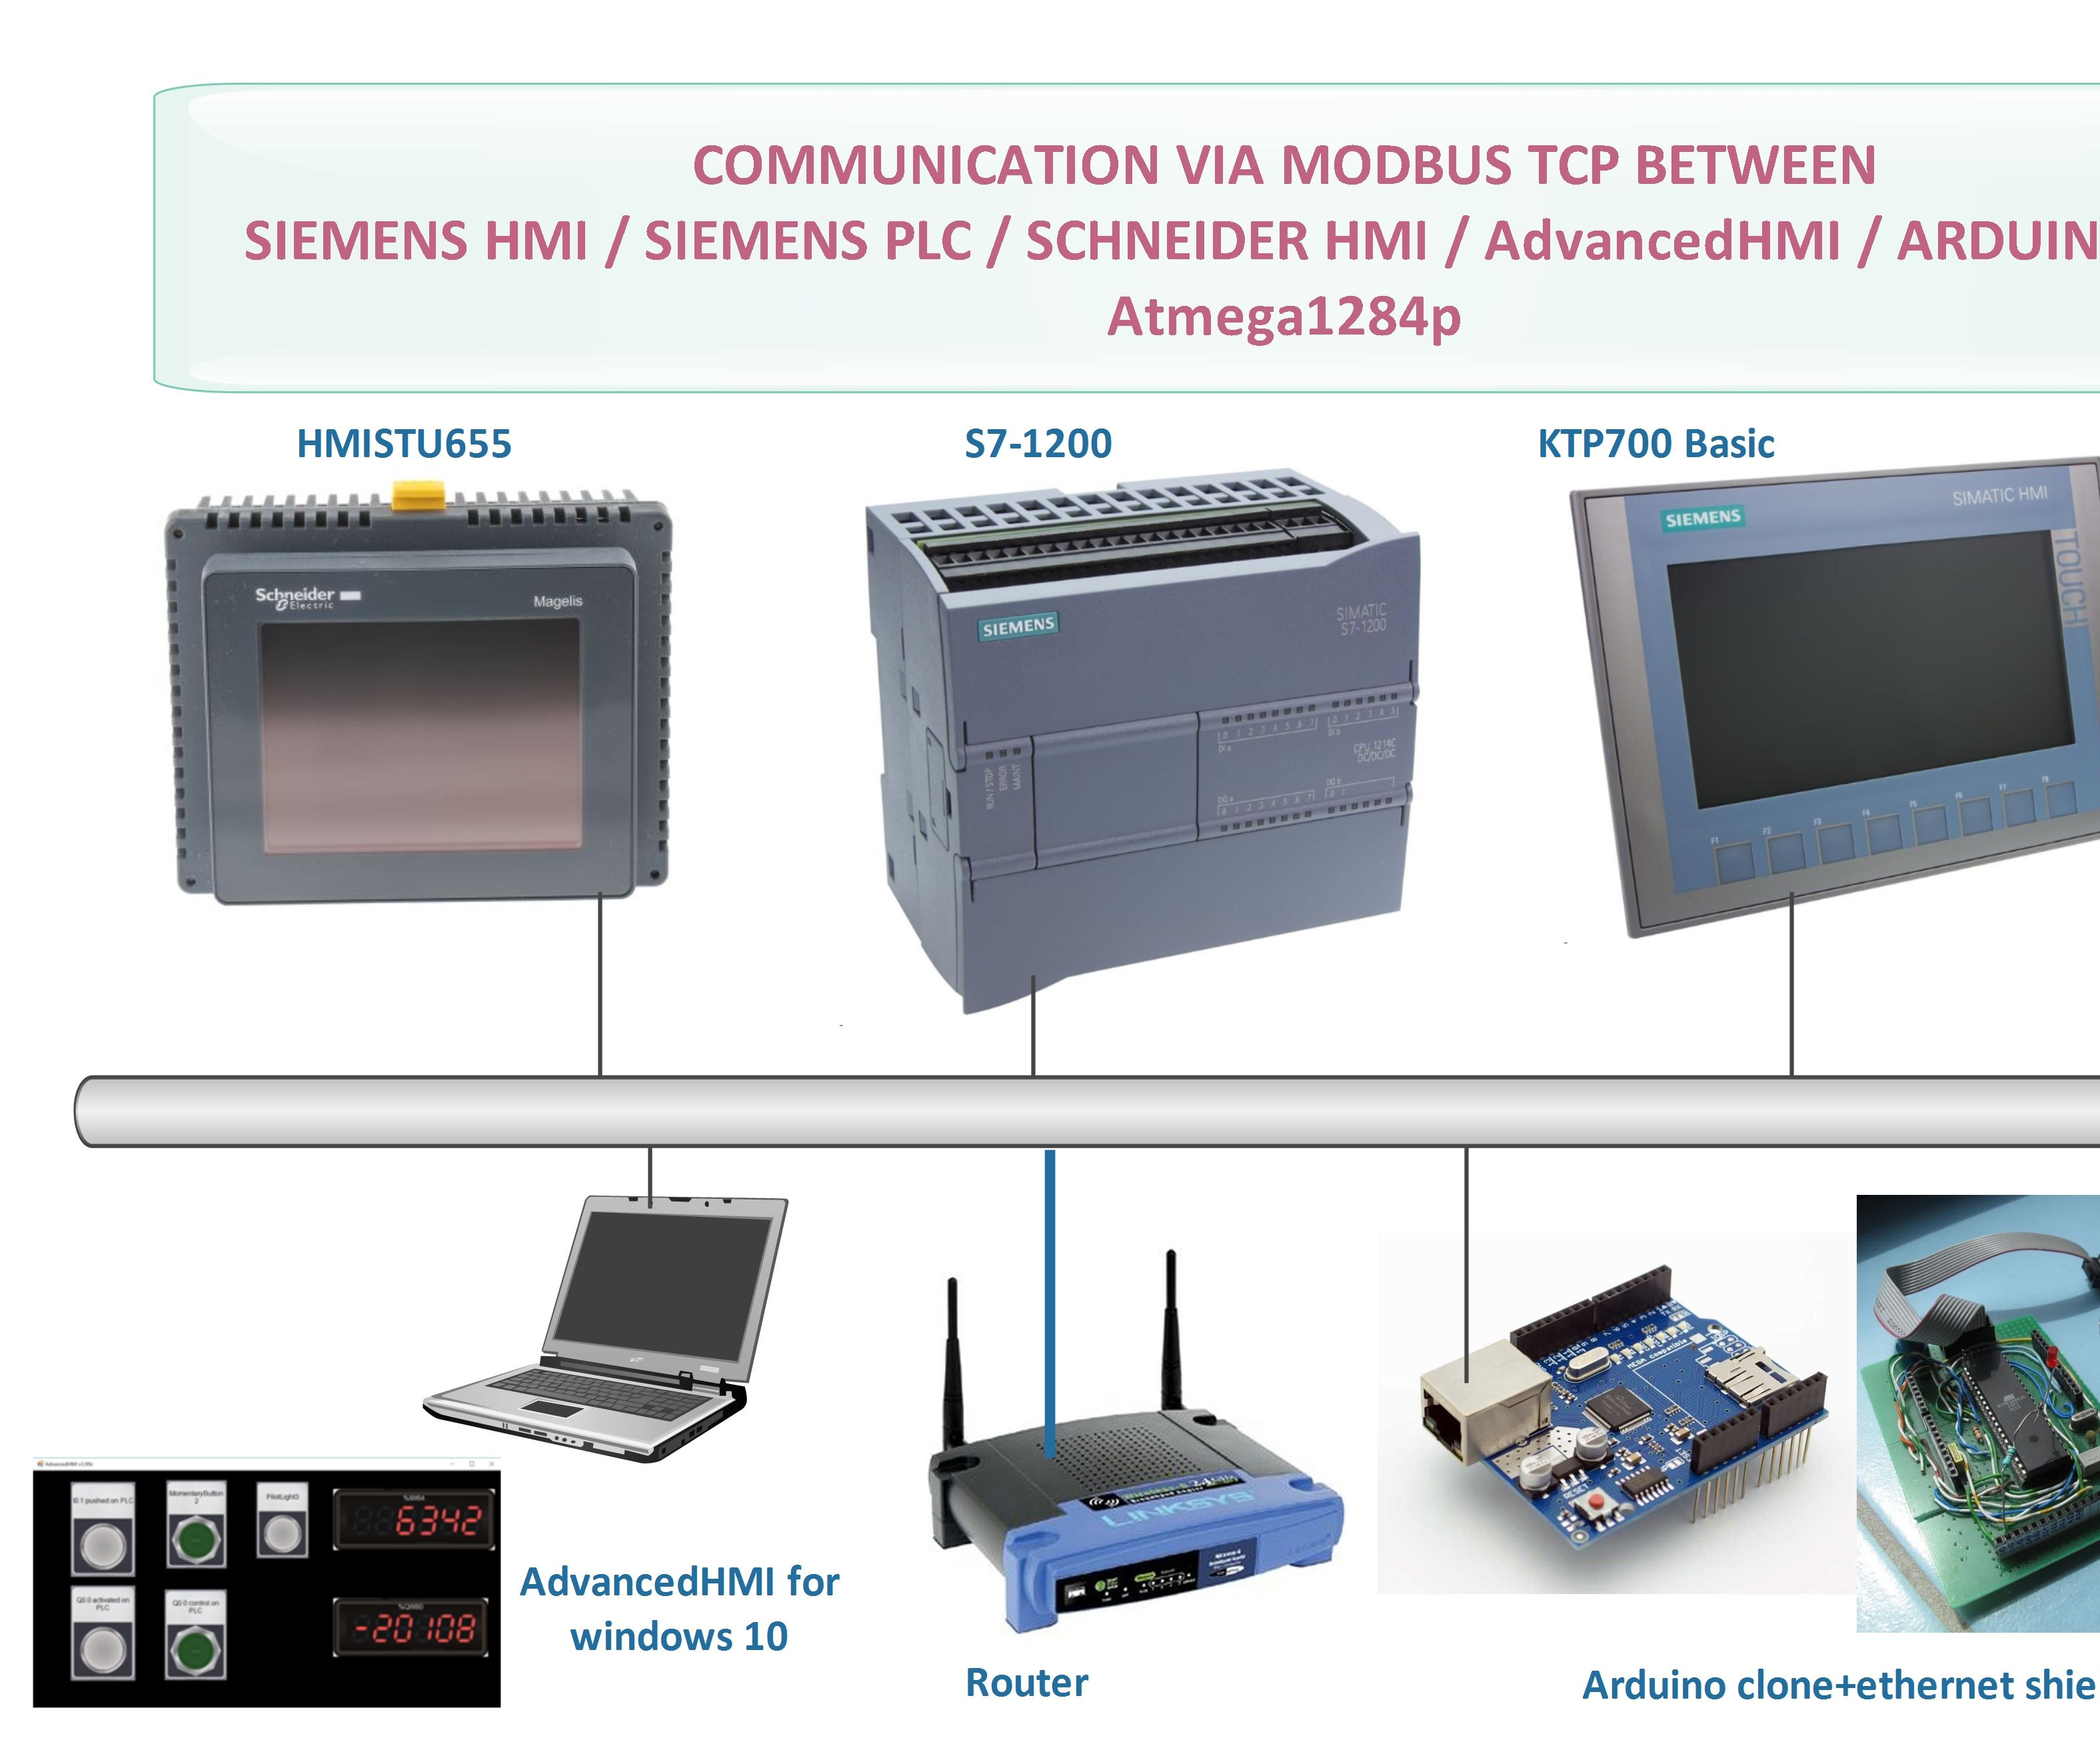 Modbus TCP Communication Between Arduino and Industrial Devices